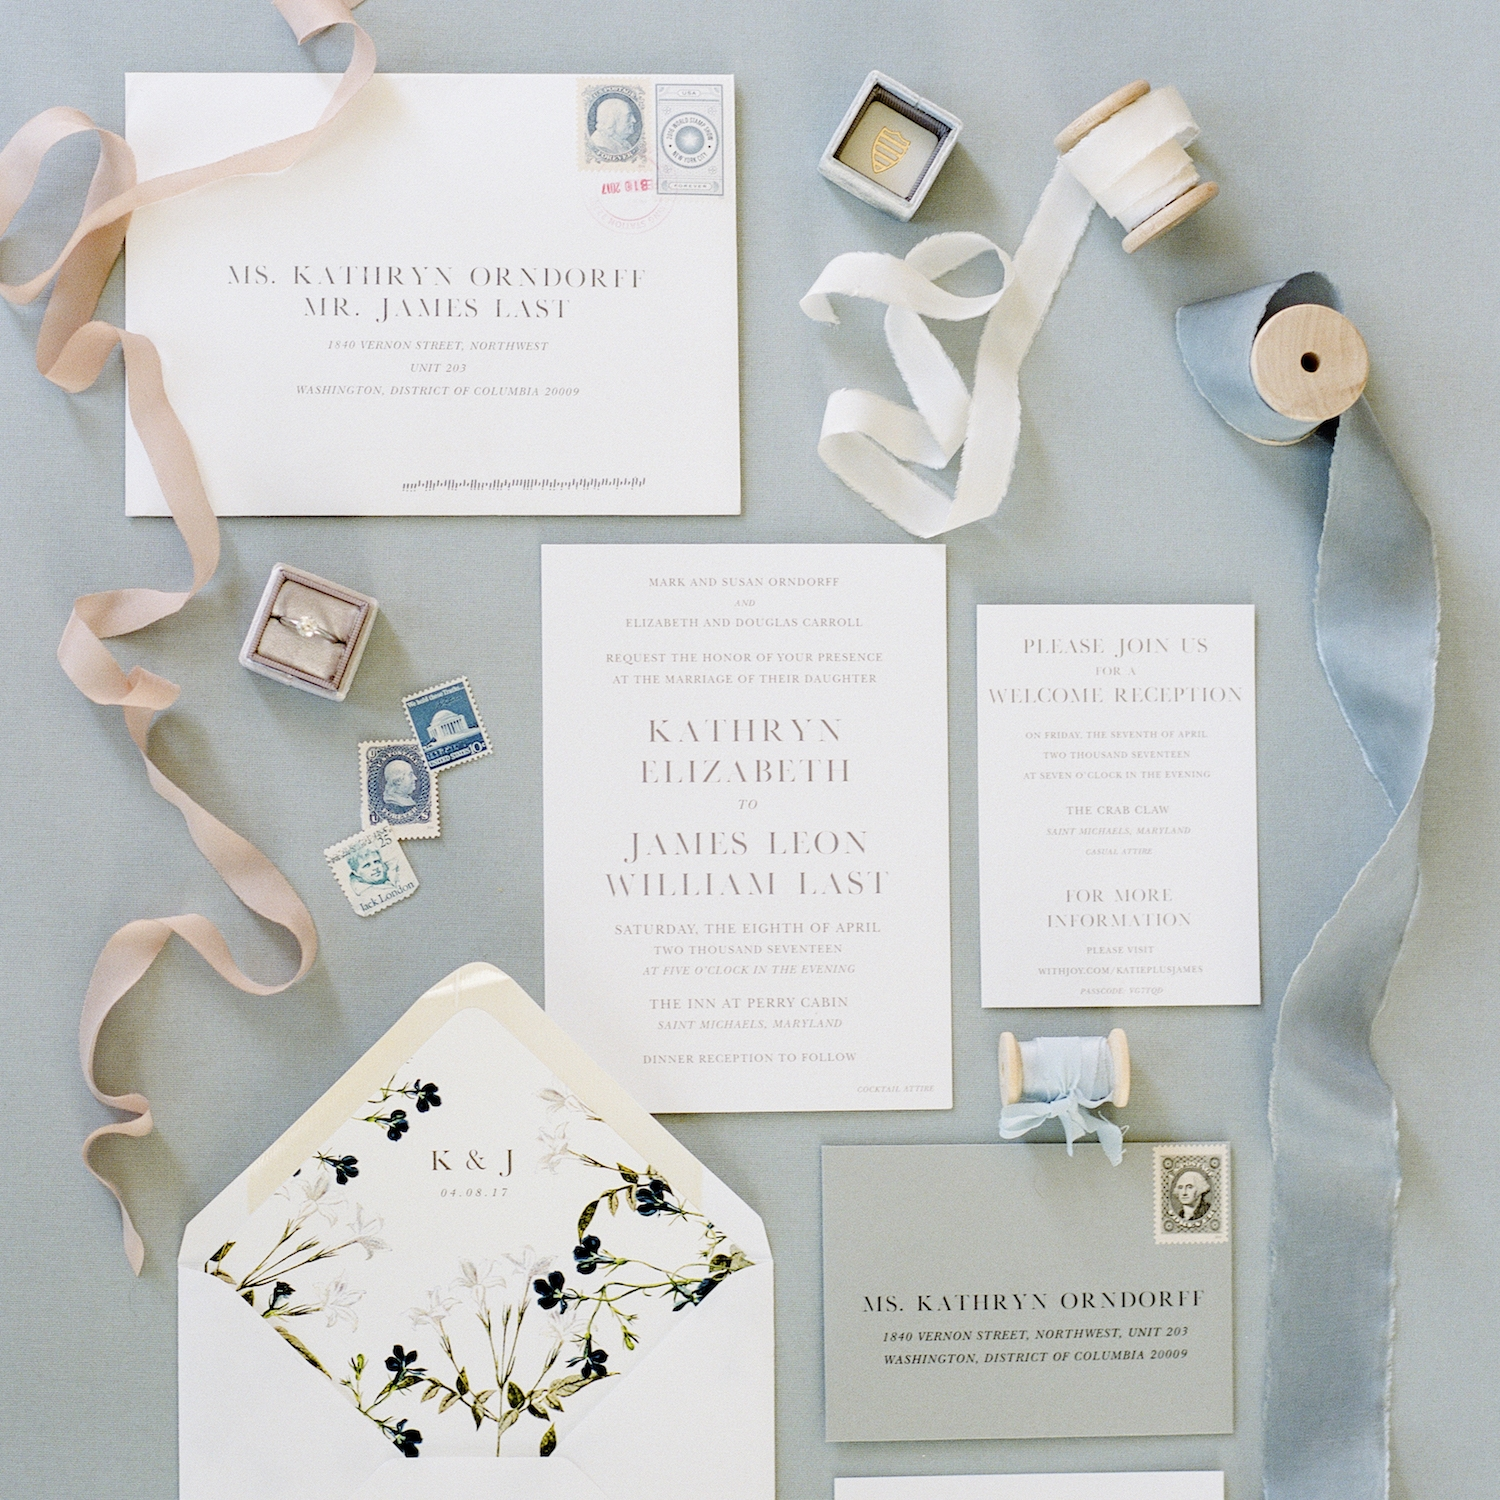 Washingtonian Bride & Groom    Katie & James' Waterfront Wedding invitations